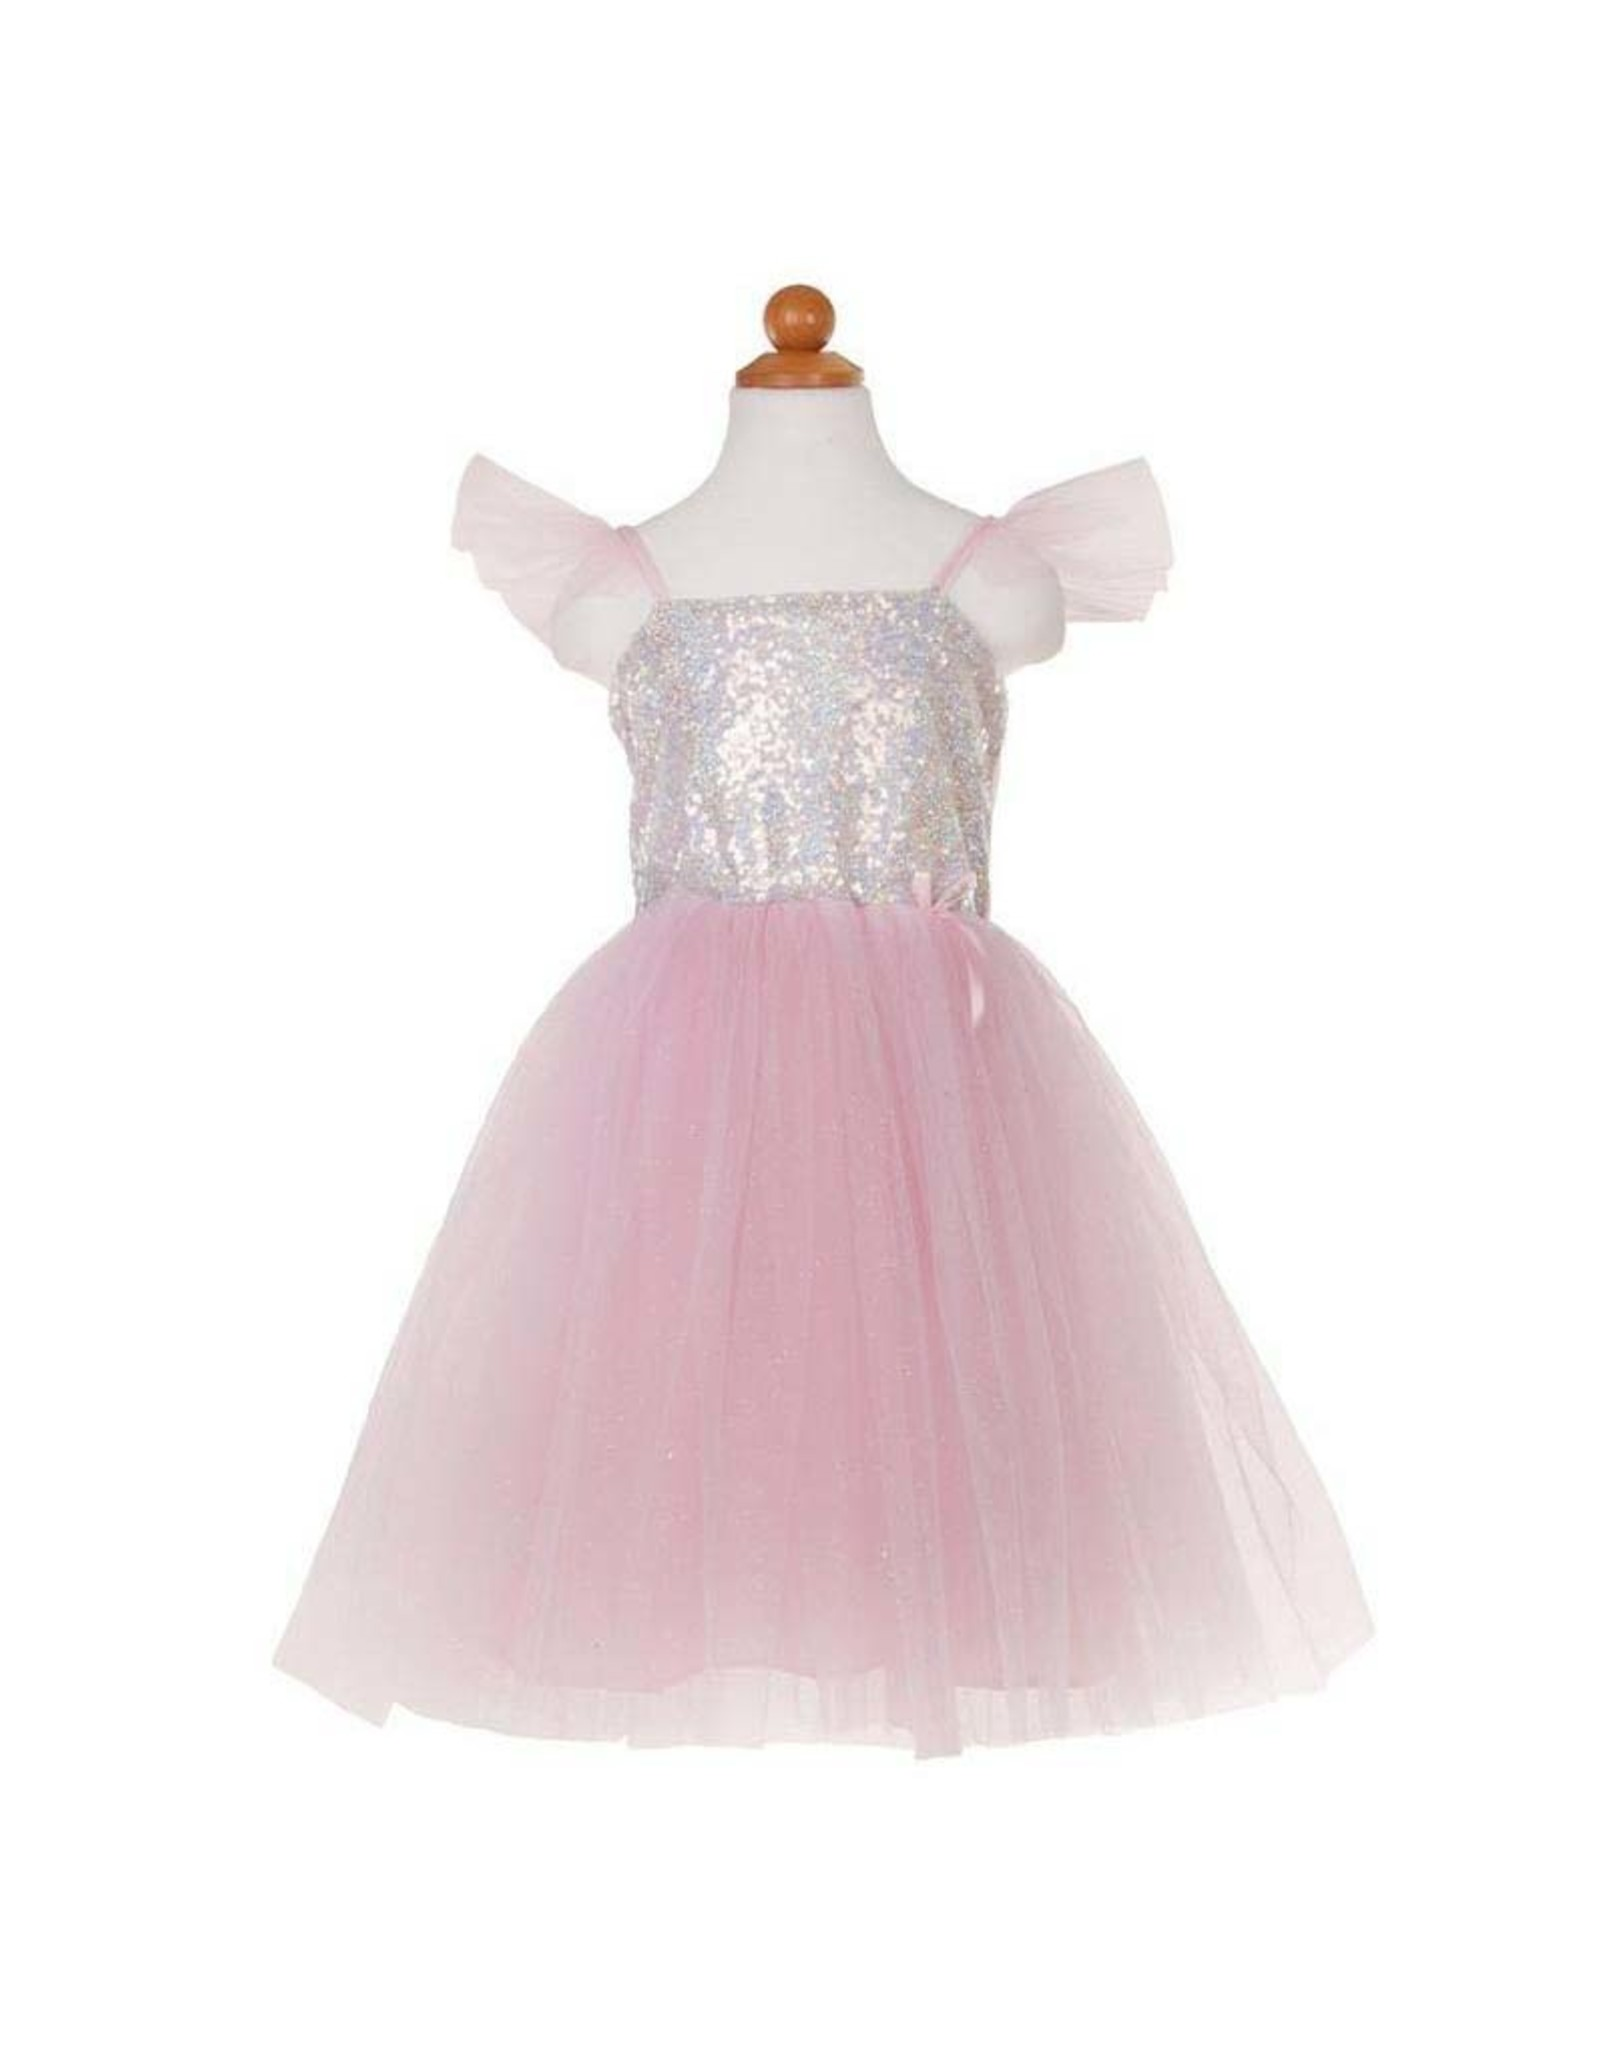 Great Pretenders Silver Sequins Princess Dress Size 5-6